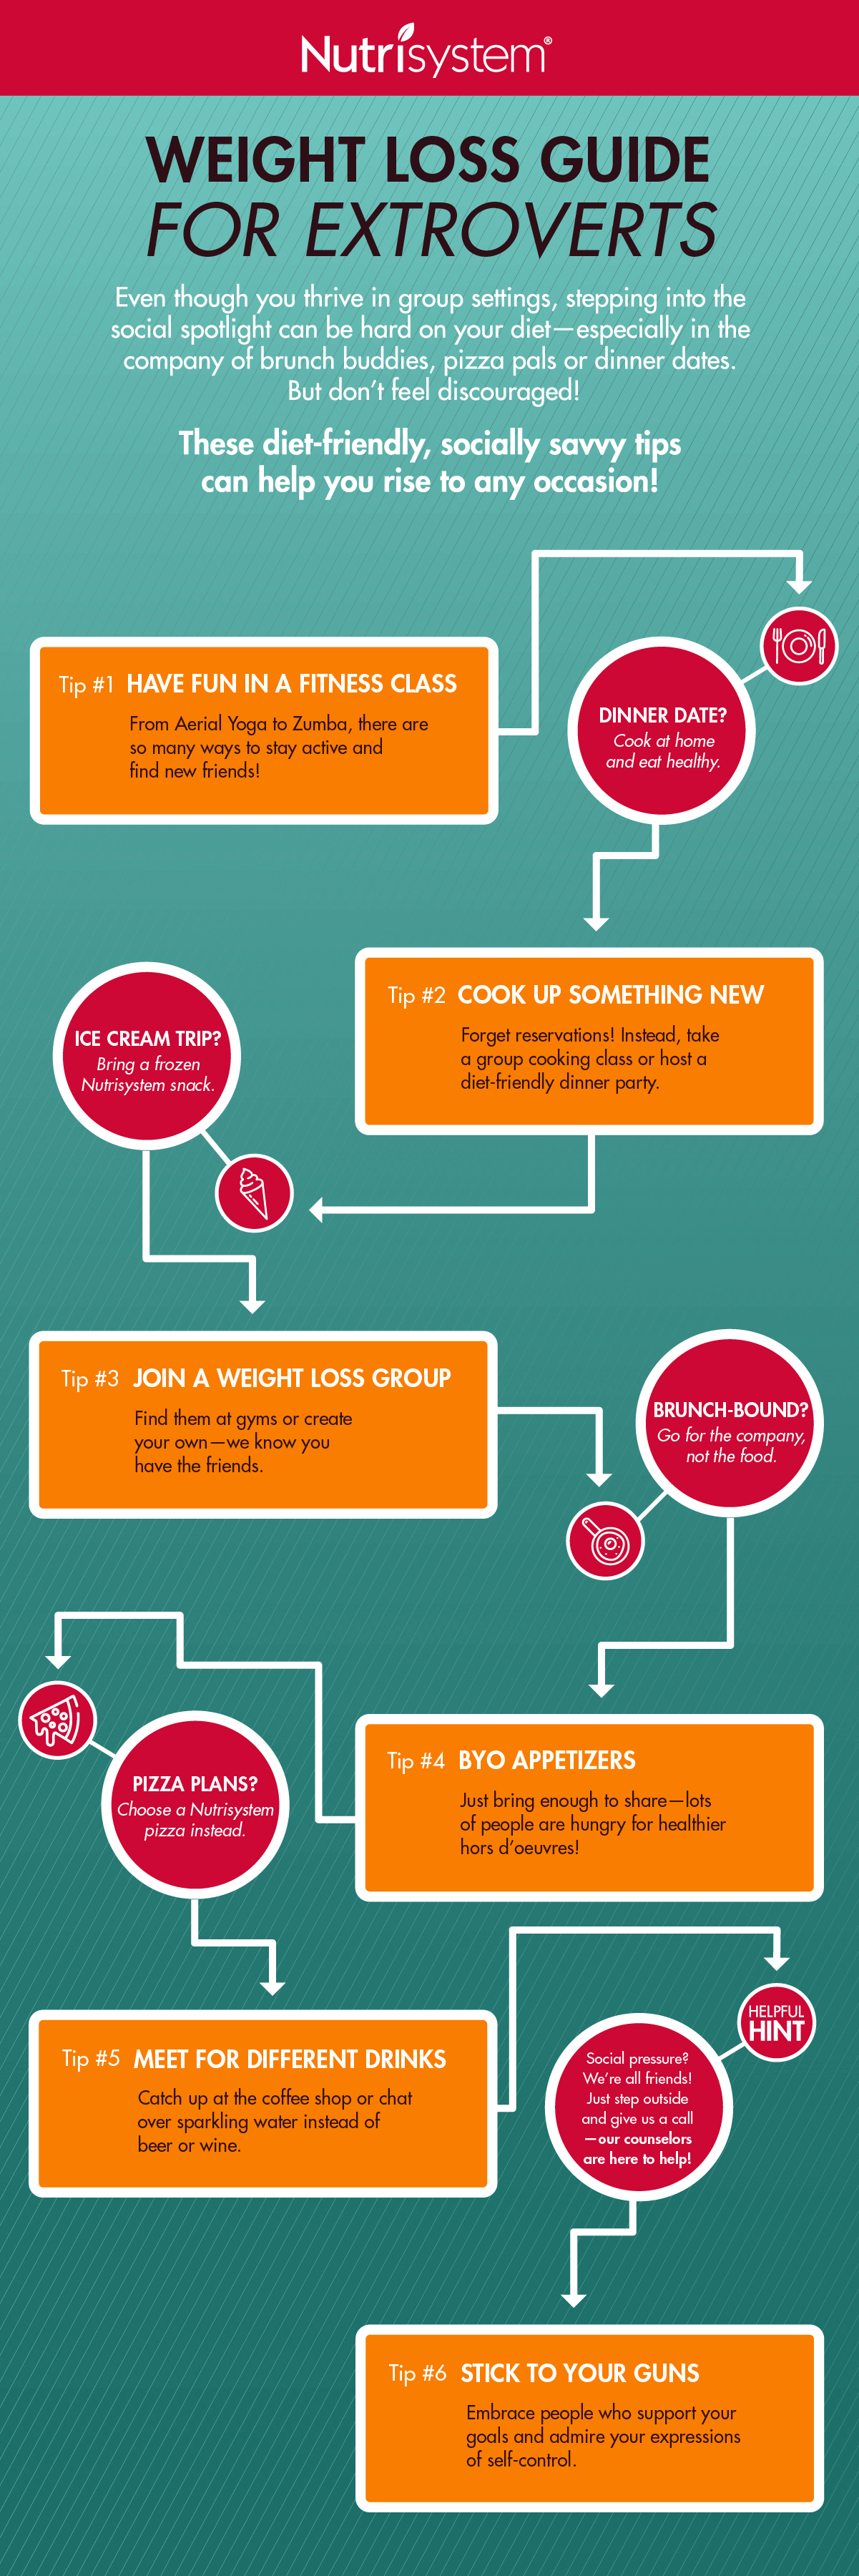 Weight-Loss-Guide-for-Extroverts-infographic-plaza